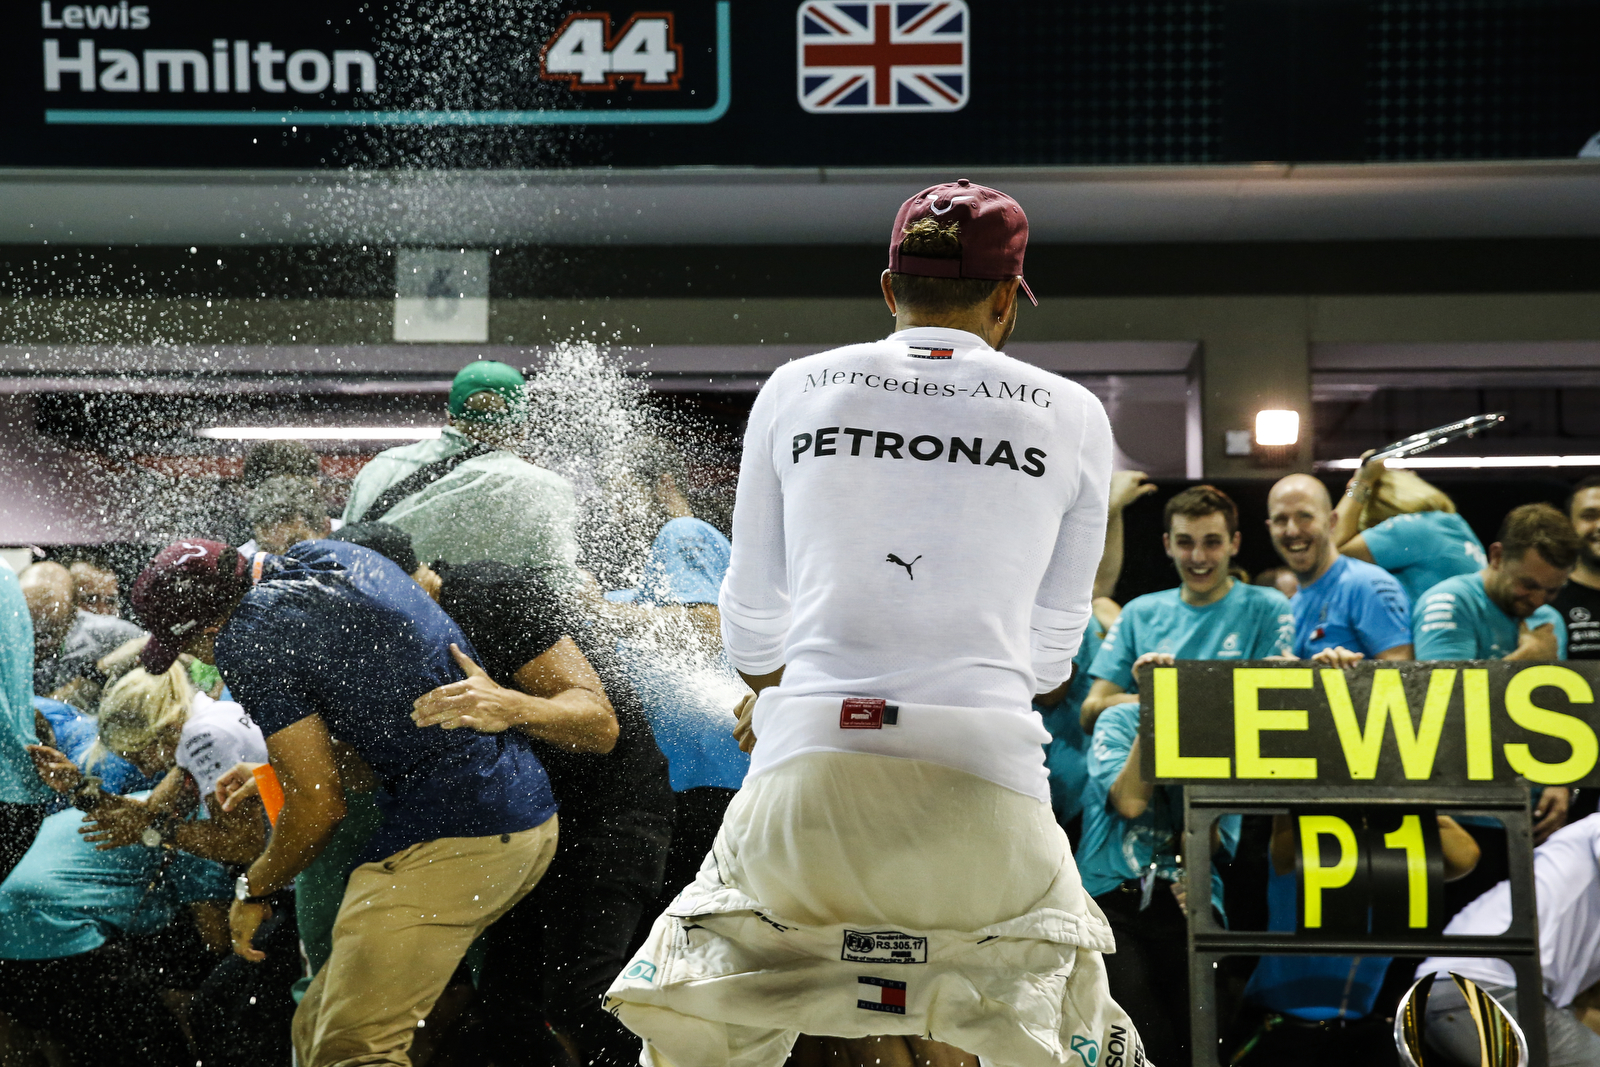 Mercedes driver Lewis Hamilton of Britain sprays champagne as he celebrates with his team after winning the Singapore Formula One Grand Prix at the Marina Bay City Circuit in Singapore, Sunday, Sept. 16, 2018. (AP Photo/Yong Teck Lim)